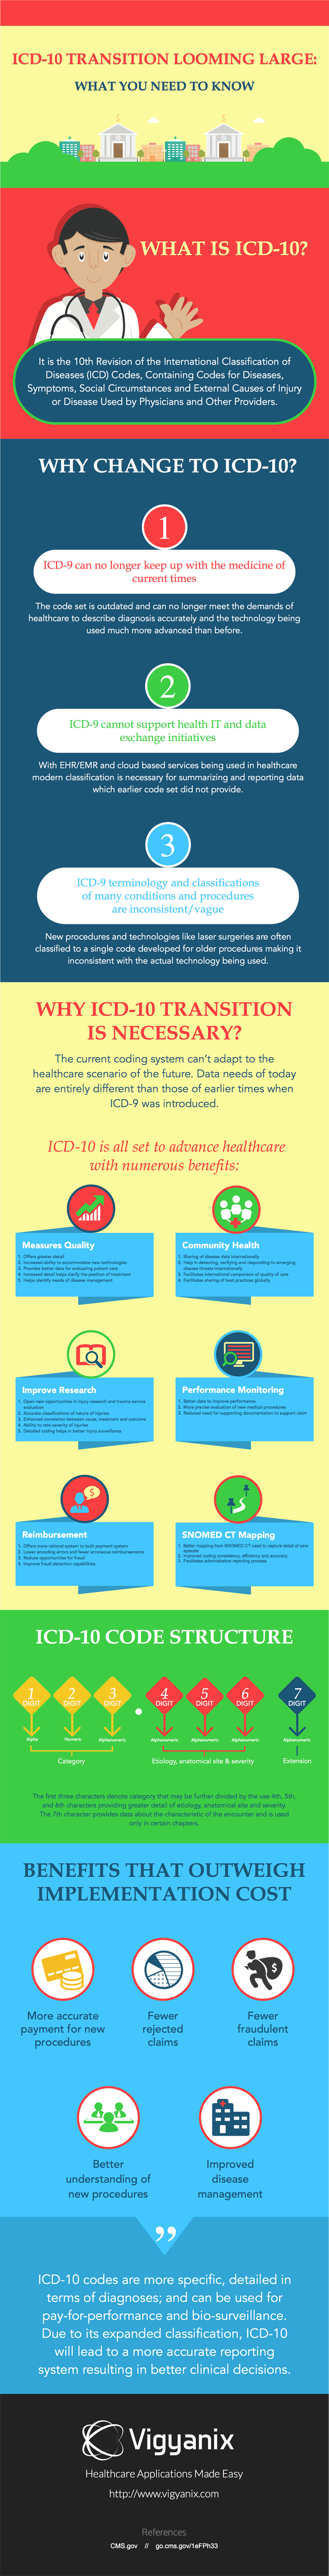 why transition to ICD 10 is imperative?